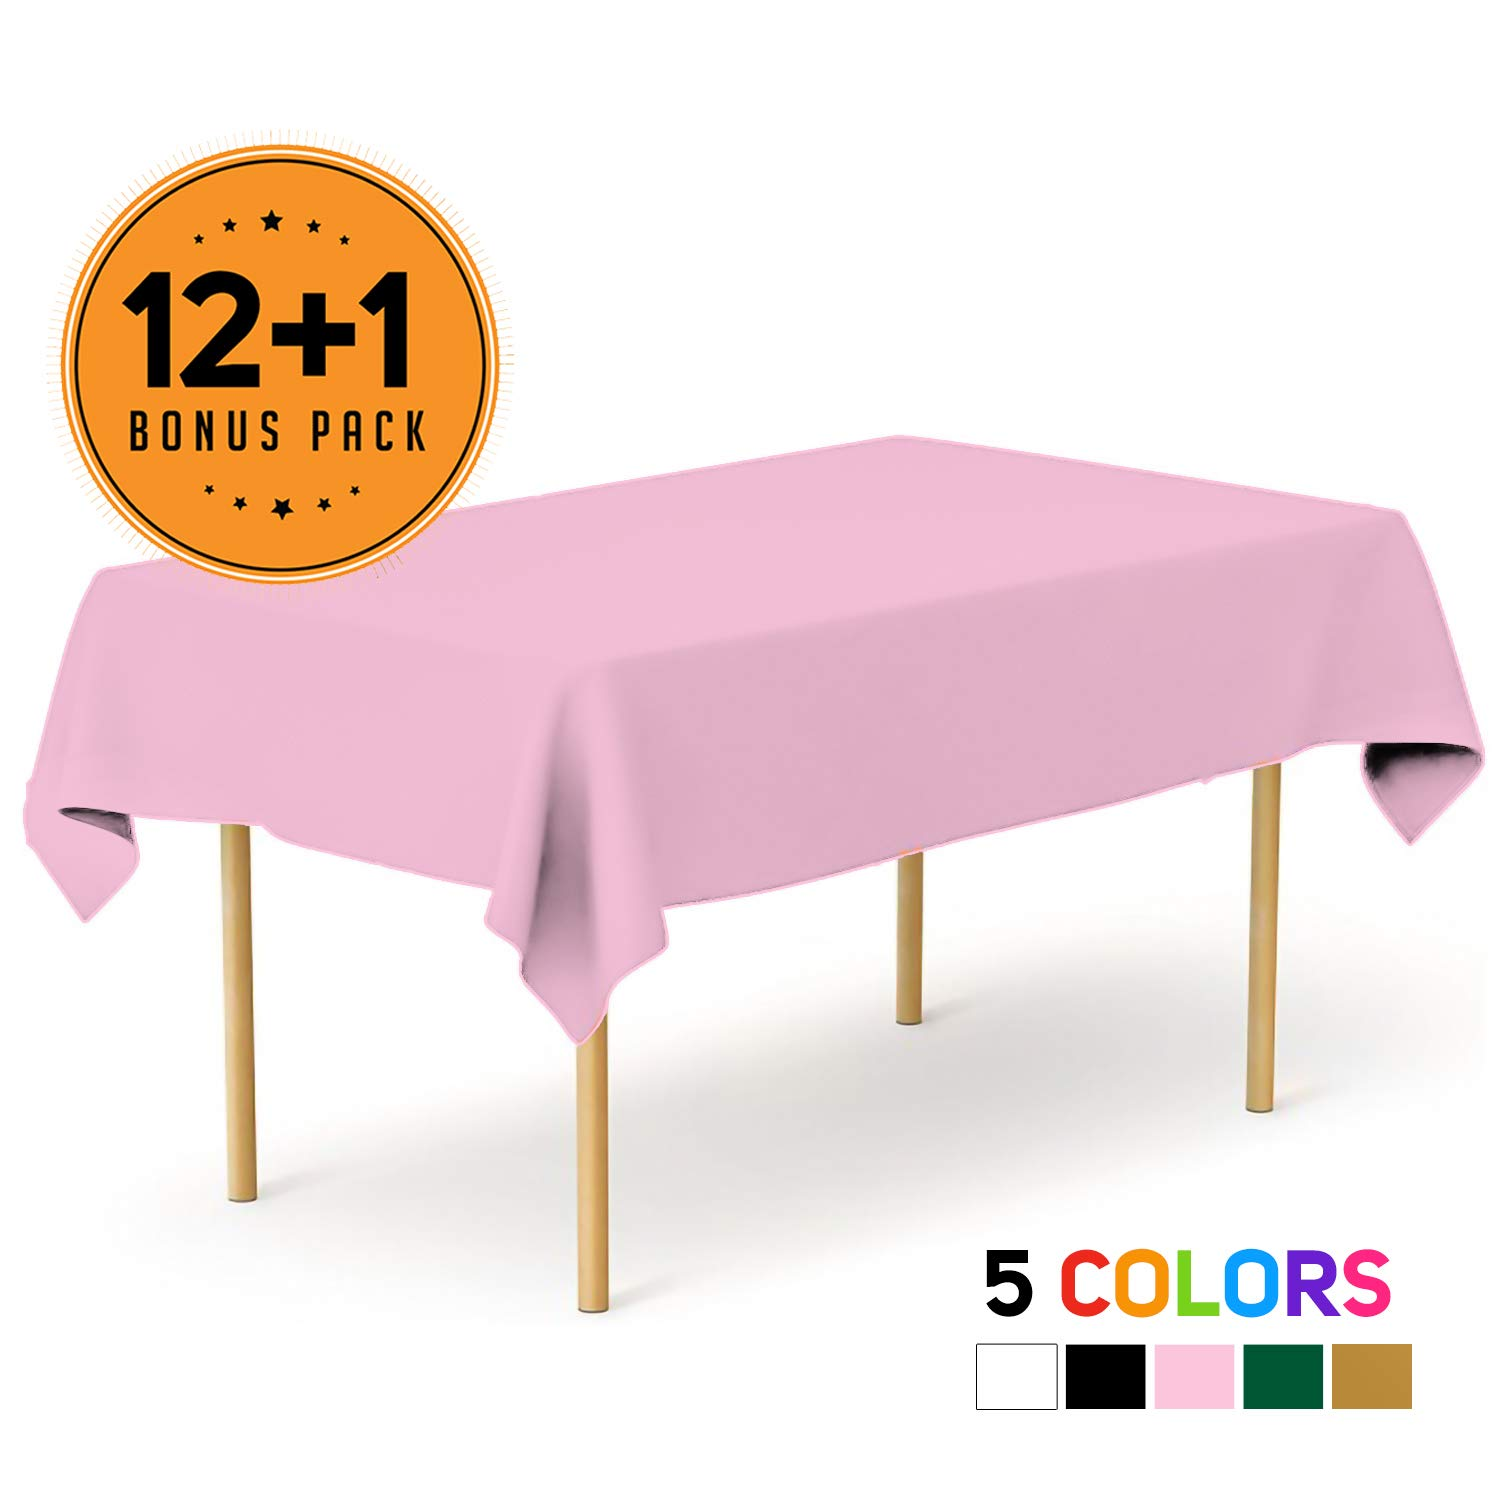 Pink 13 Pack Premium Disposable Plastic Tablecloth 54 x 108 Inch - Waterproof Disposable Tablecloths for Rectangle Tables up to 8 ft in Length - Indoor or Outdoor Use - Party Plastic Table Cover